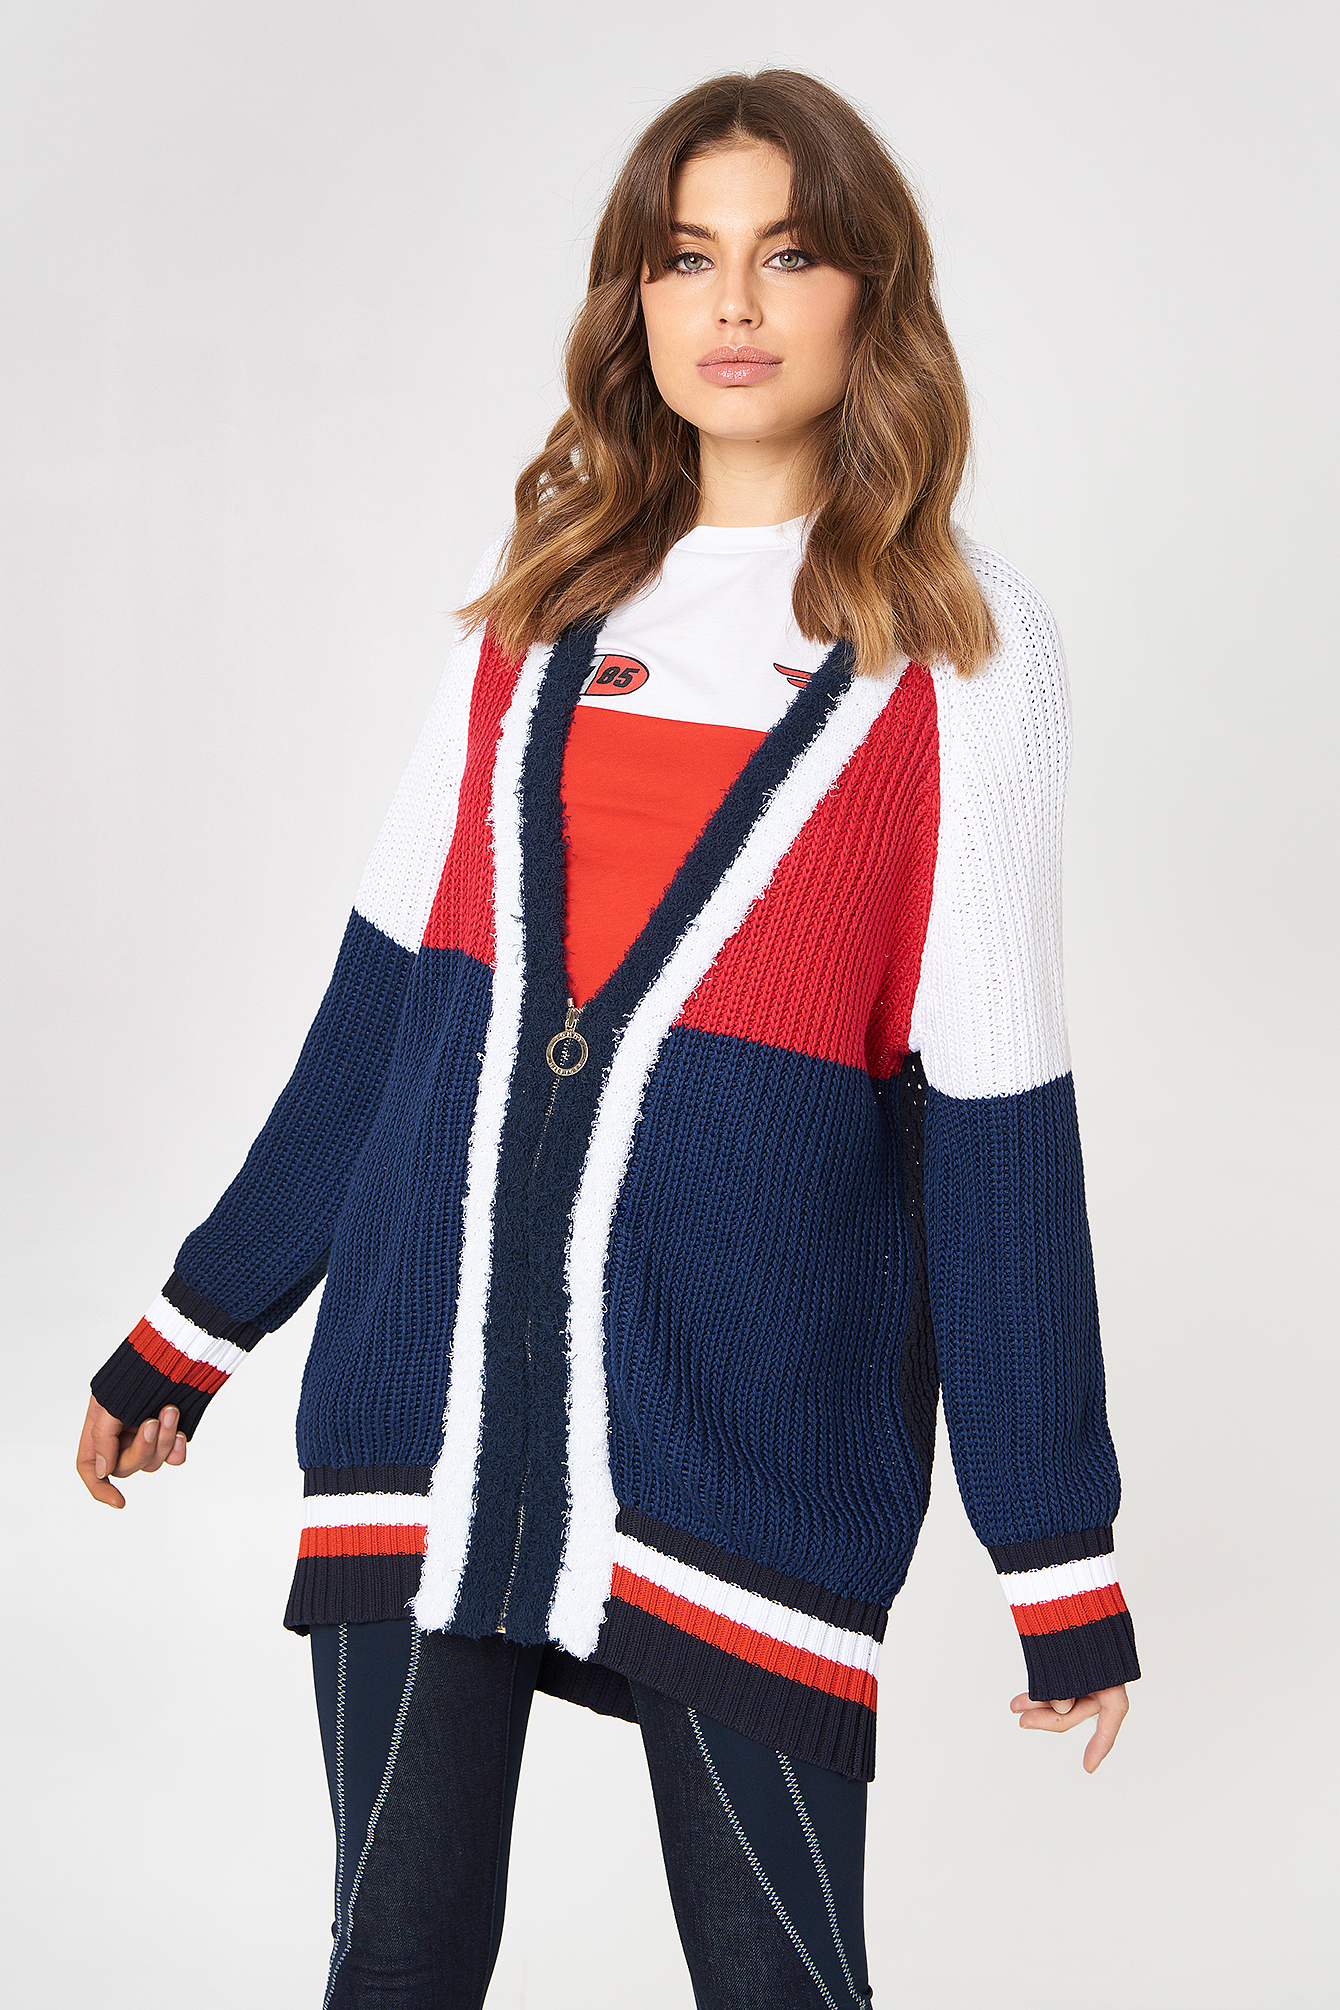 Buy Cheap Purchase Gigi Hadid Color Block Cardigan - Sales Up to -50% Tommy Hilfiger From China Low Shipping Fee GNFpX